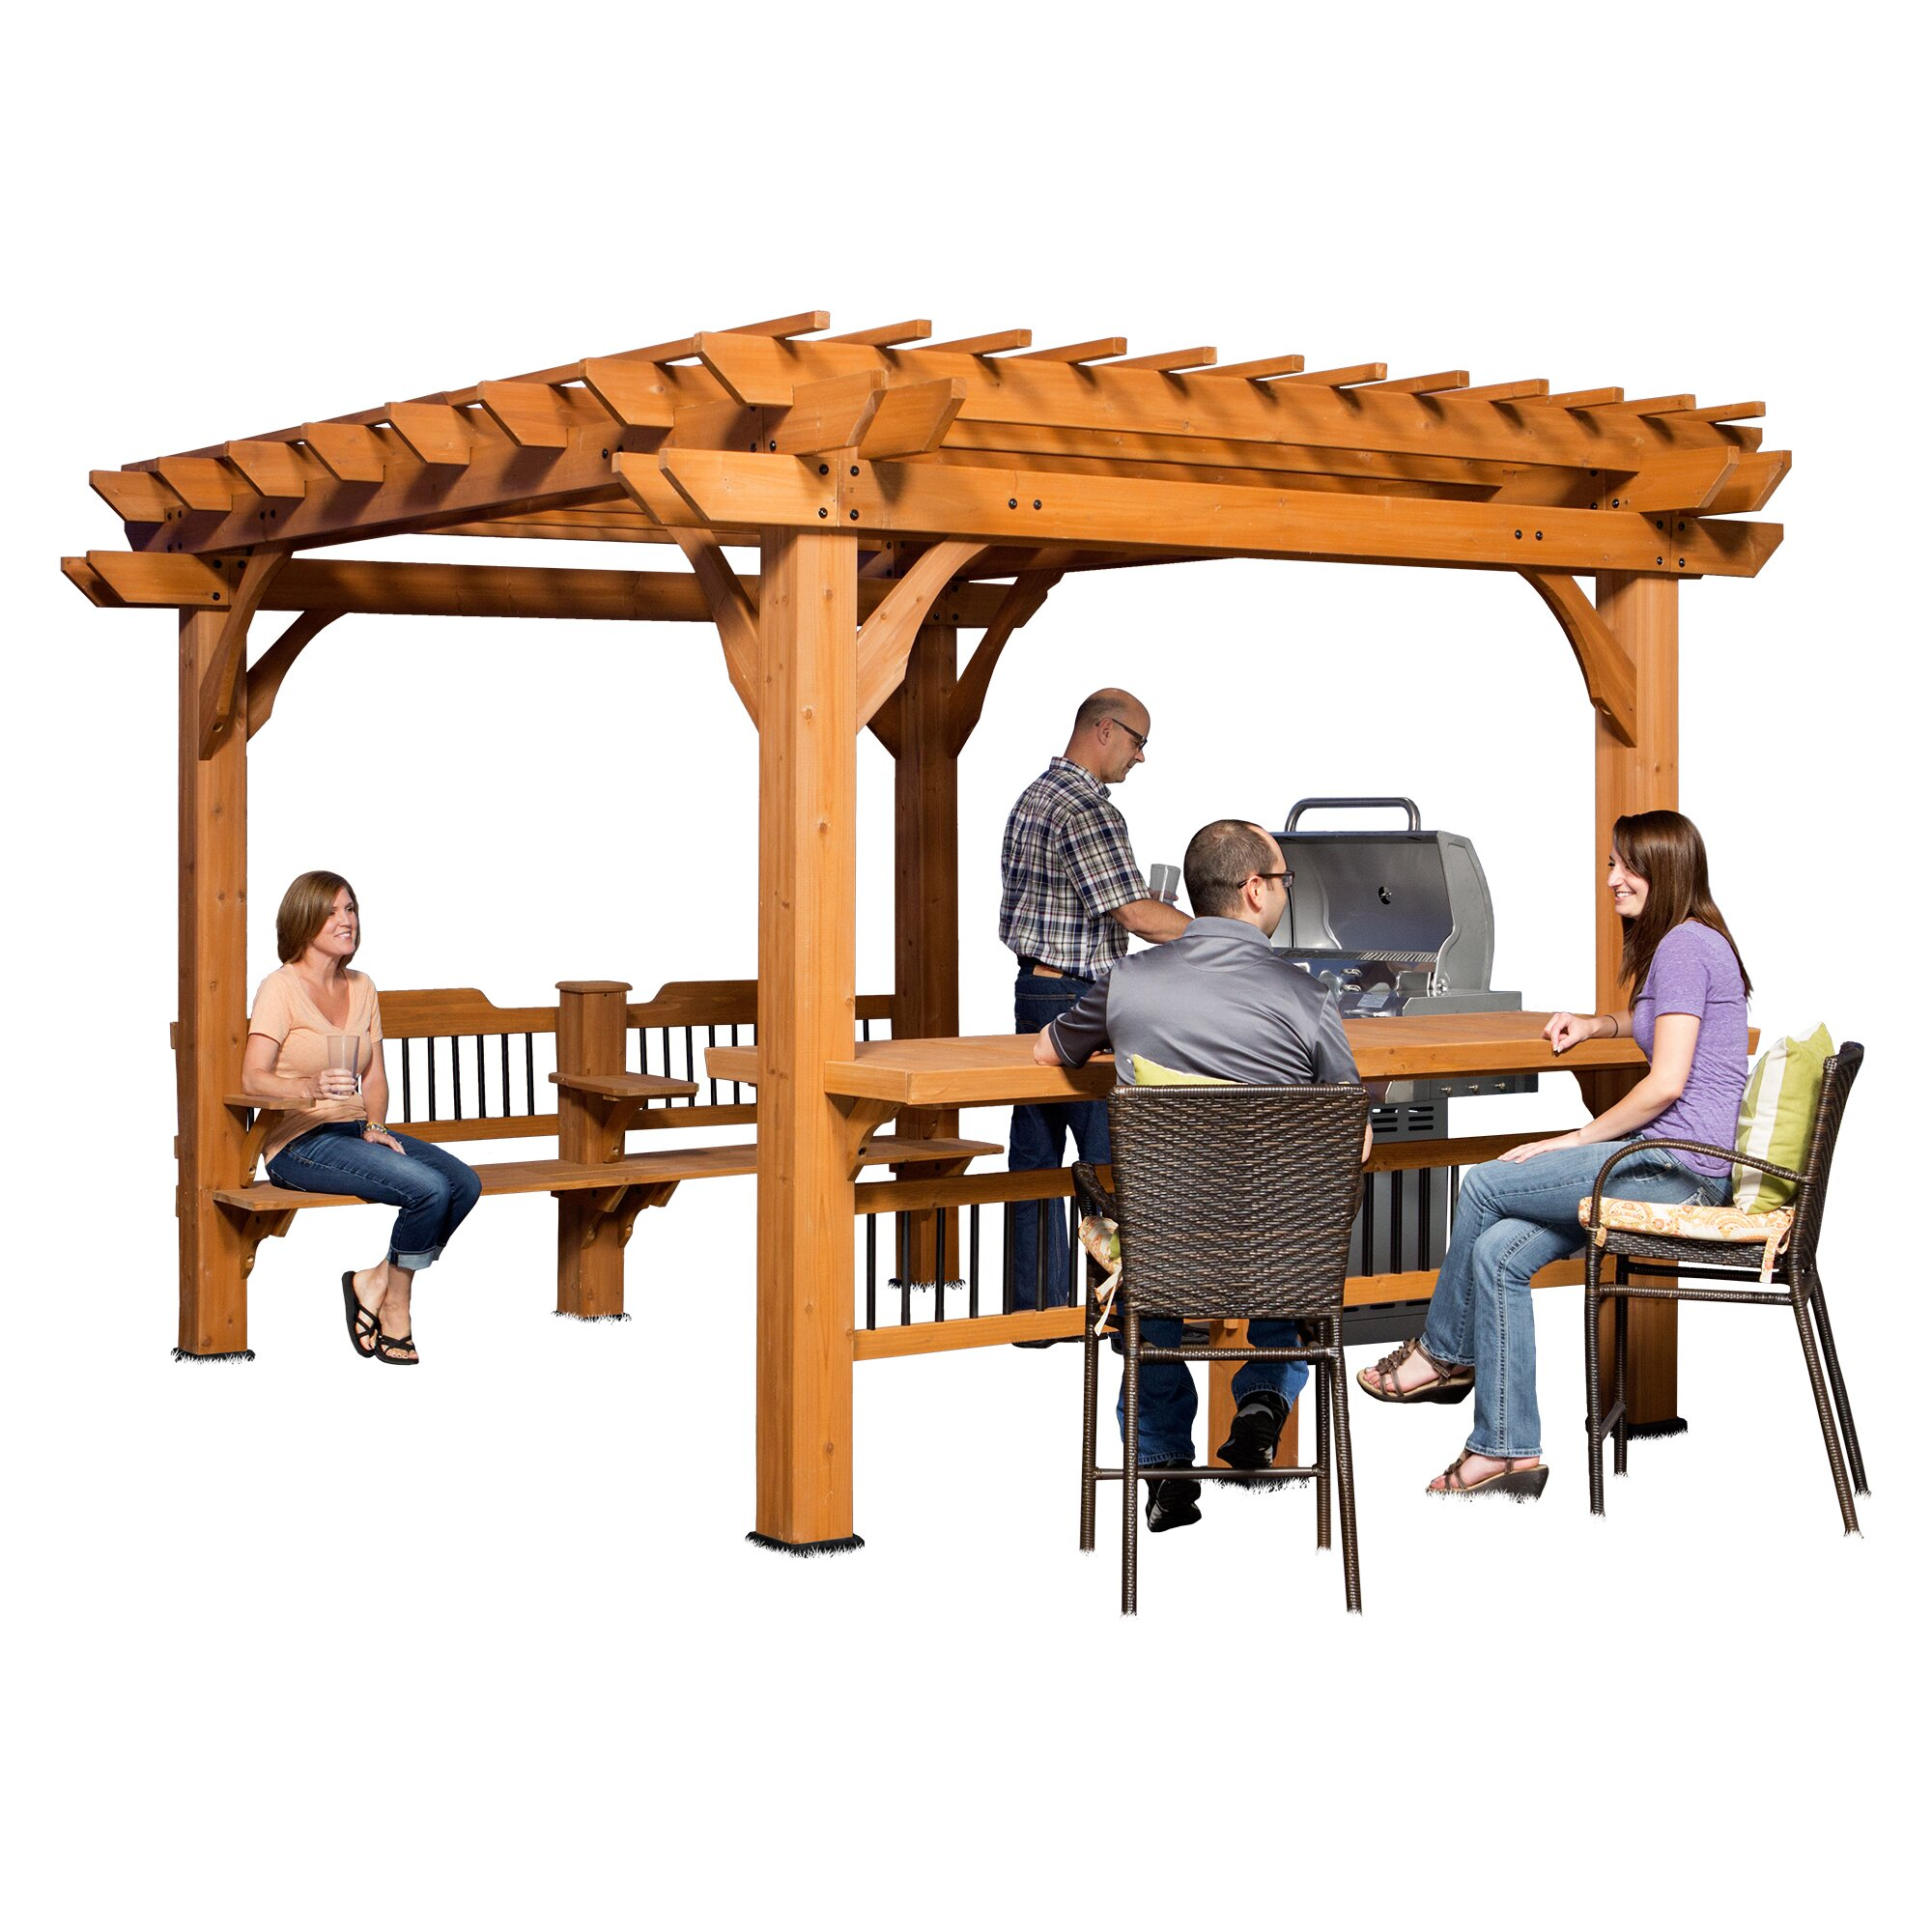 Backyard Discovery Oasis 12 Ft. W x 10 Ft. D Pergola | Wayfair